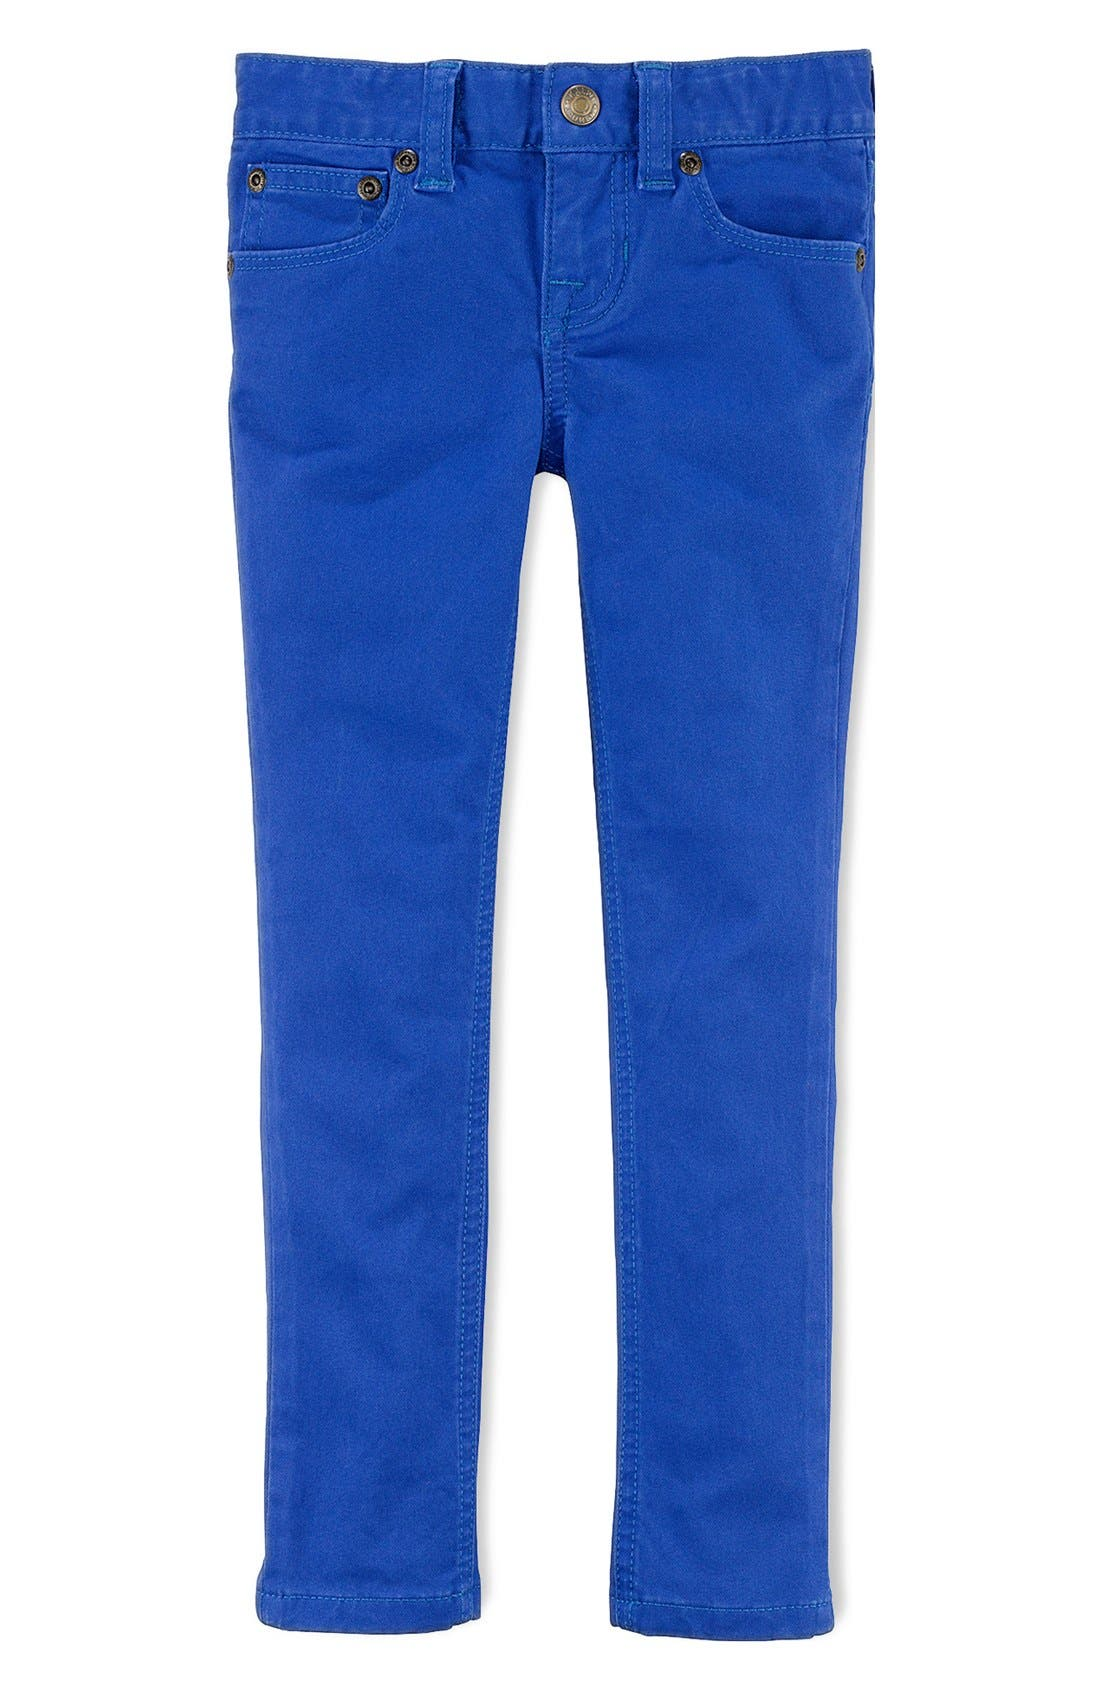 Main Image - Ralph Lauren Skinny Jeans (Toddler Girls)